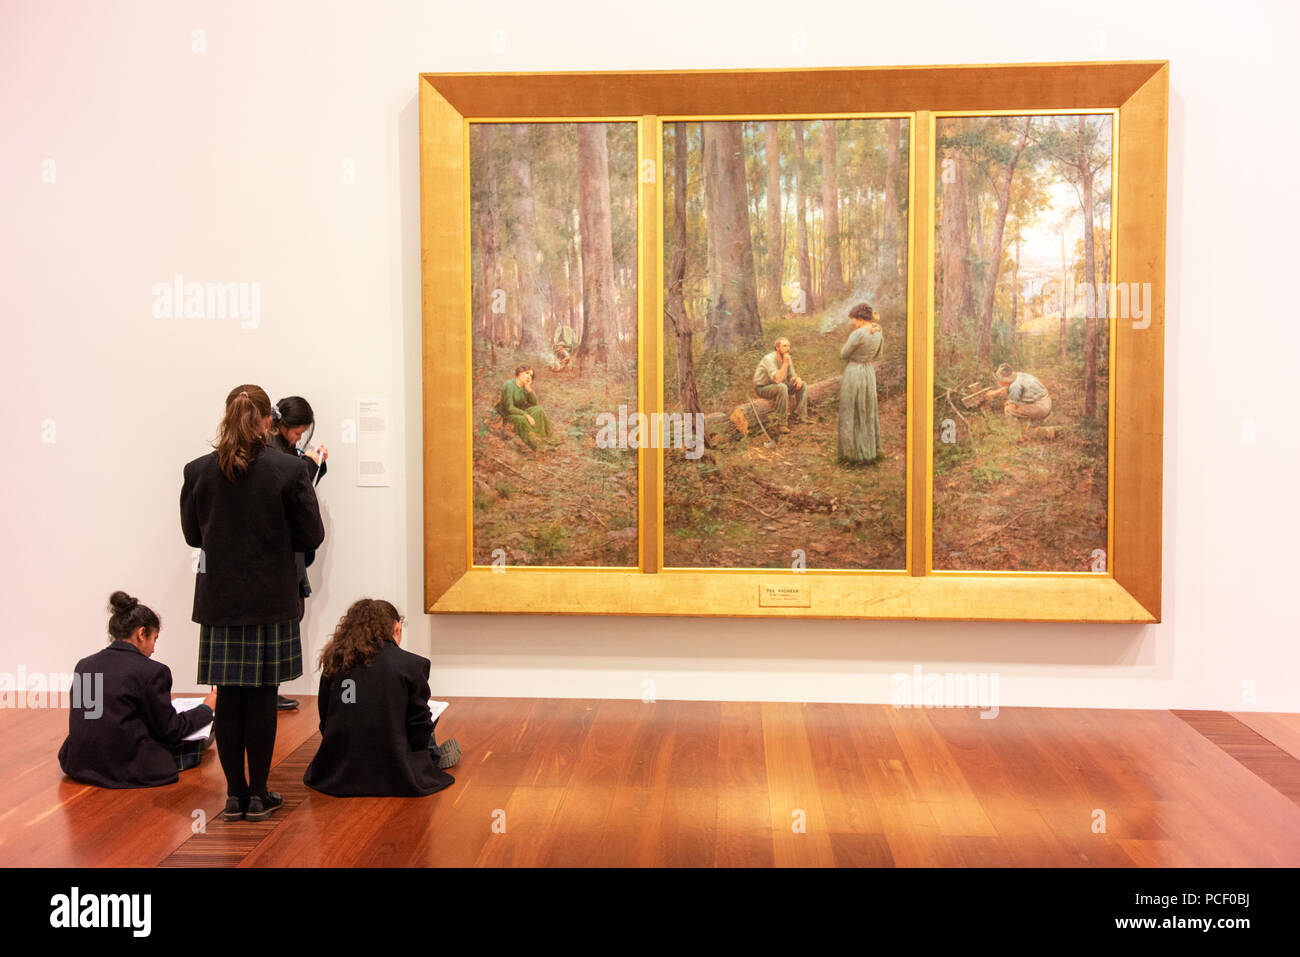 Students studying art works at the Ian Potter Centre, part of the National Gallery of Victoria which holds collections of Australian and other art. - Stock Image